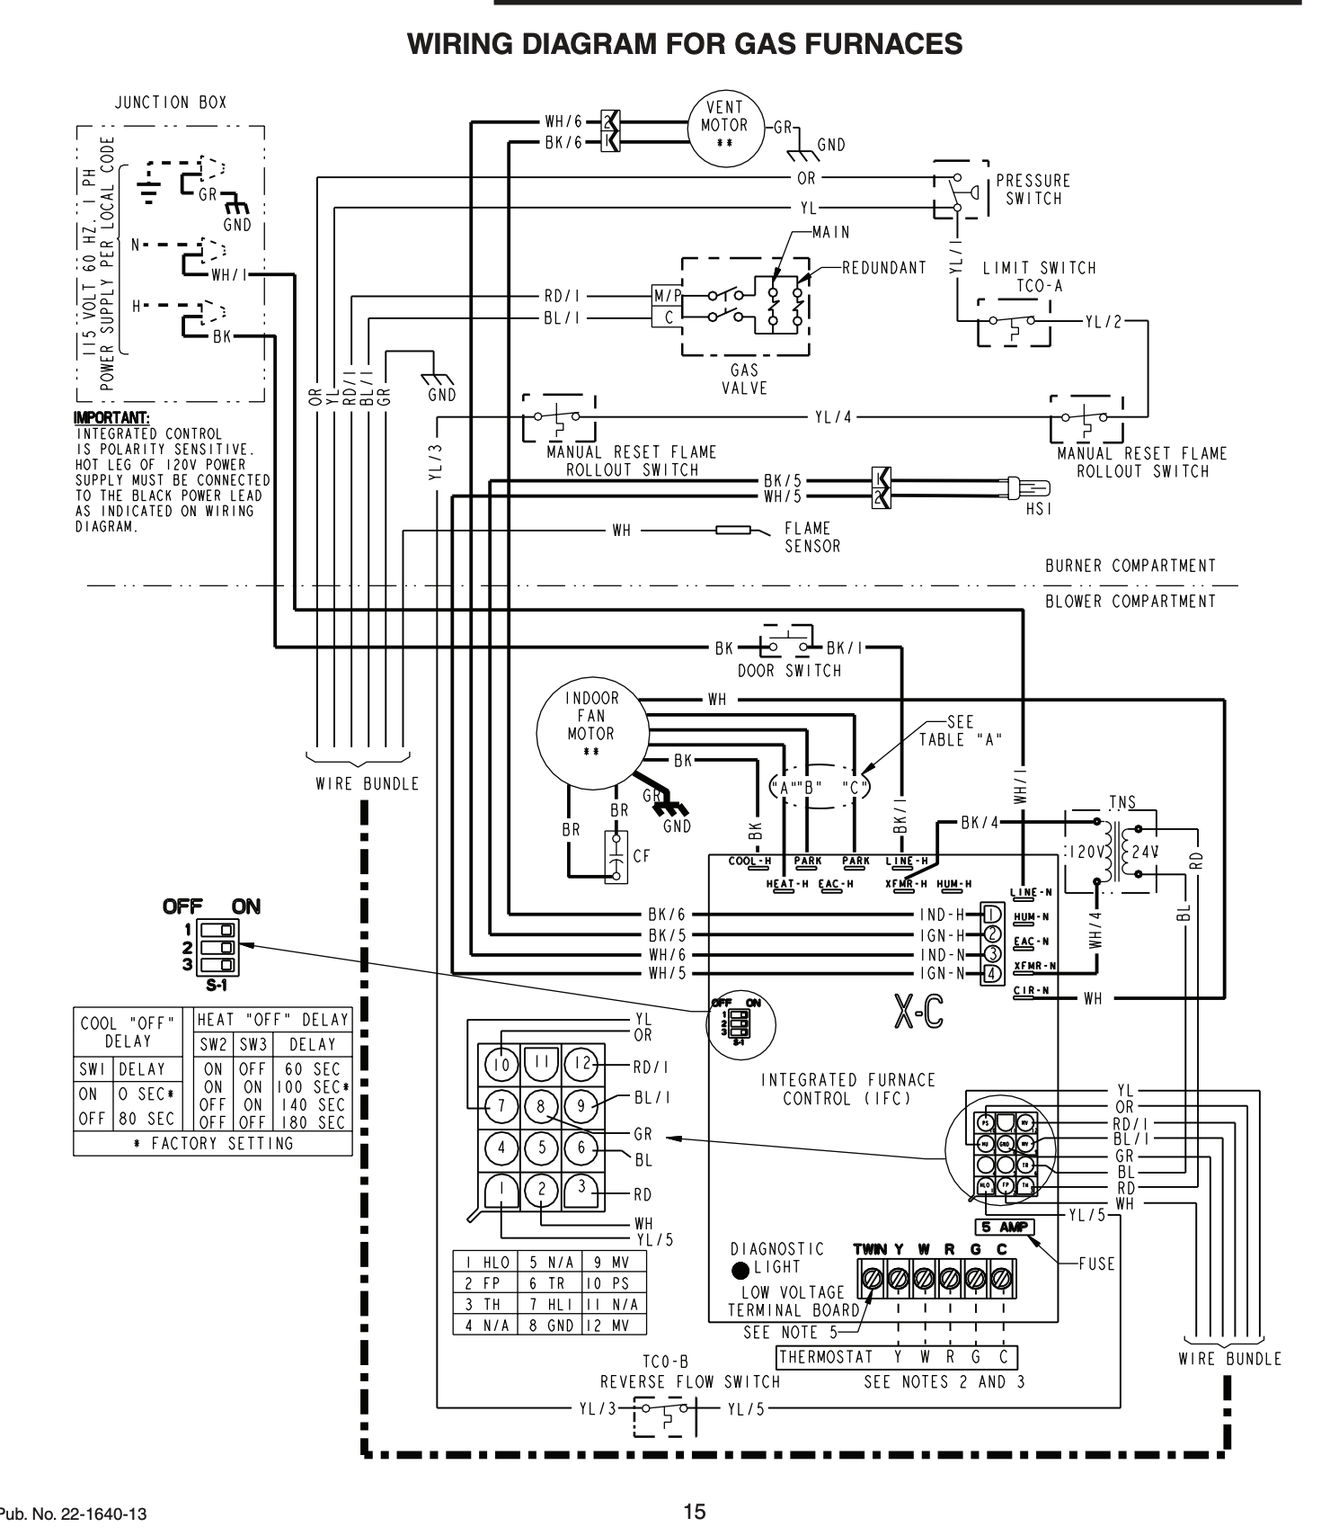 B4970 Oil Fired Furnace Fan Center Relay Wire Diagram ... on